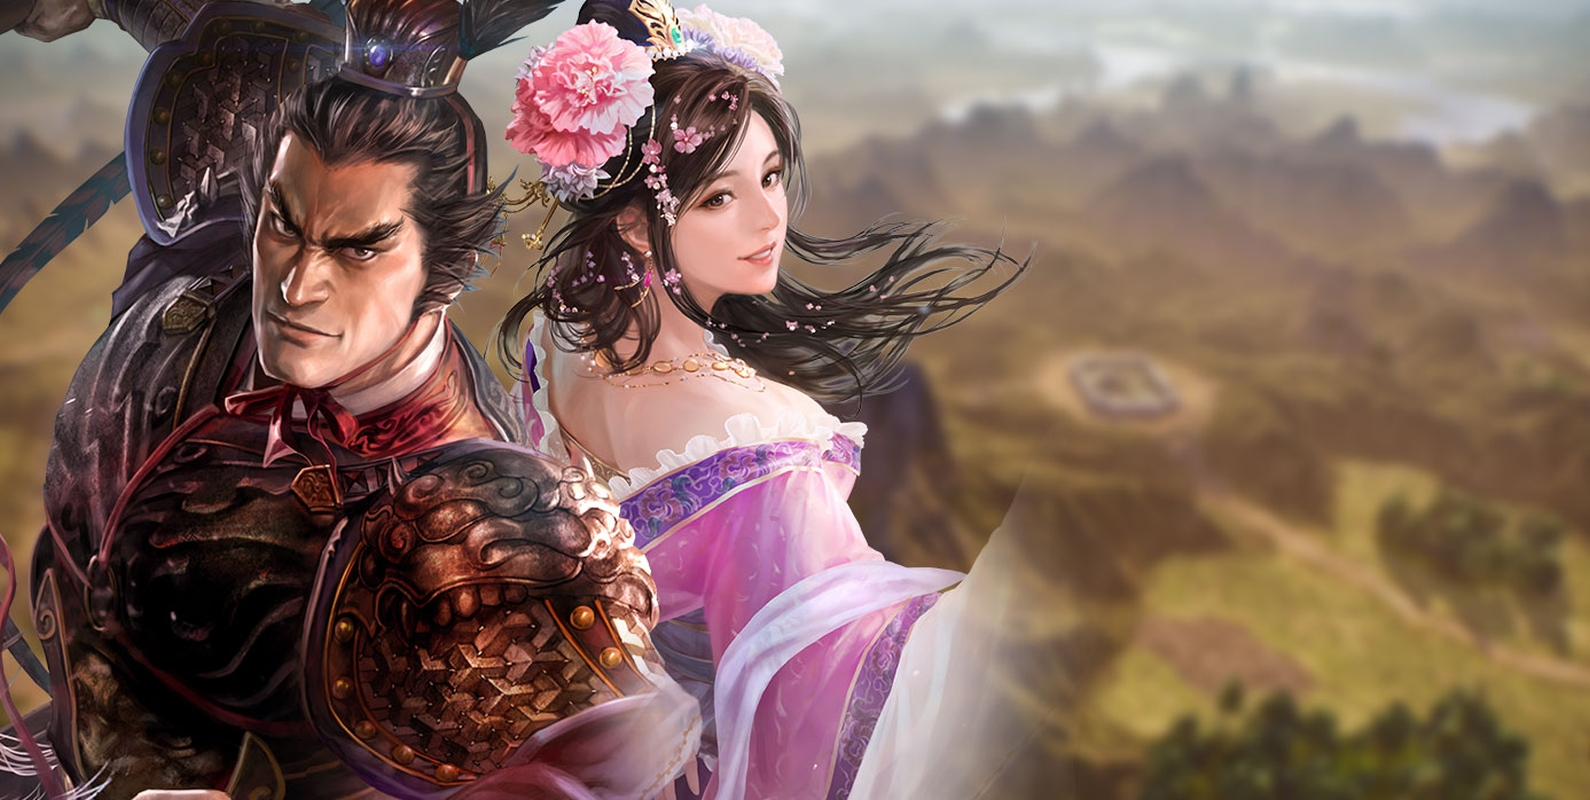 Koei Tecmo Releases New Information And Screenshots For Romance of the Three Kingdoms XIV